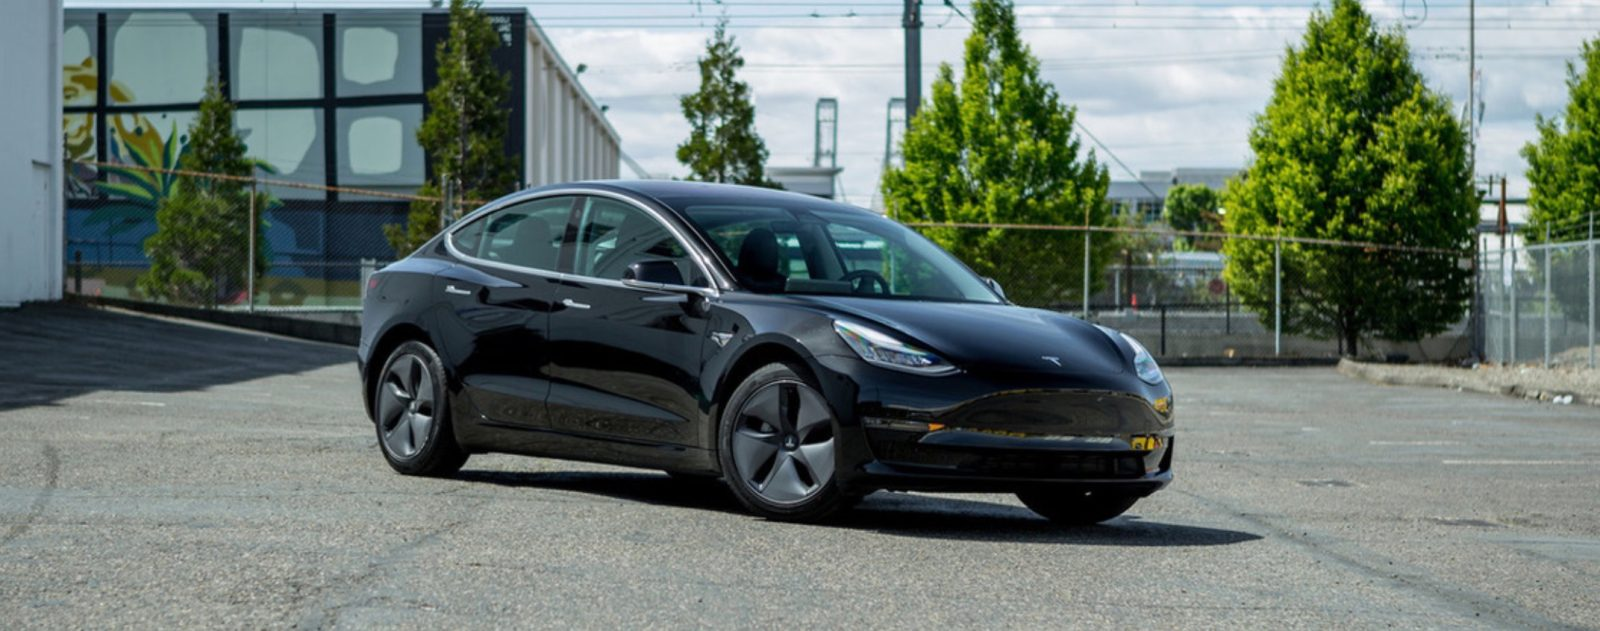 Porsche rents Tesla Model 3 to test out latest Autopilot, comes out impressed